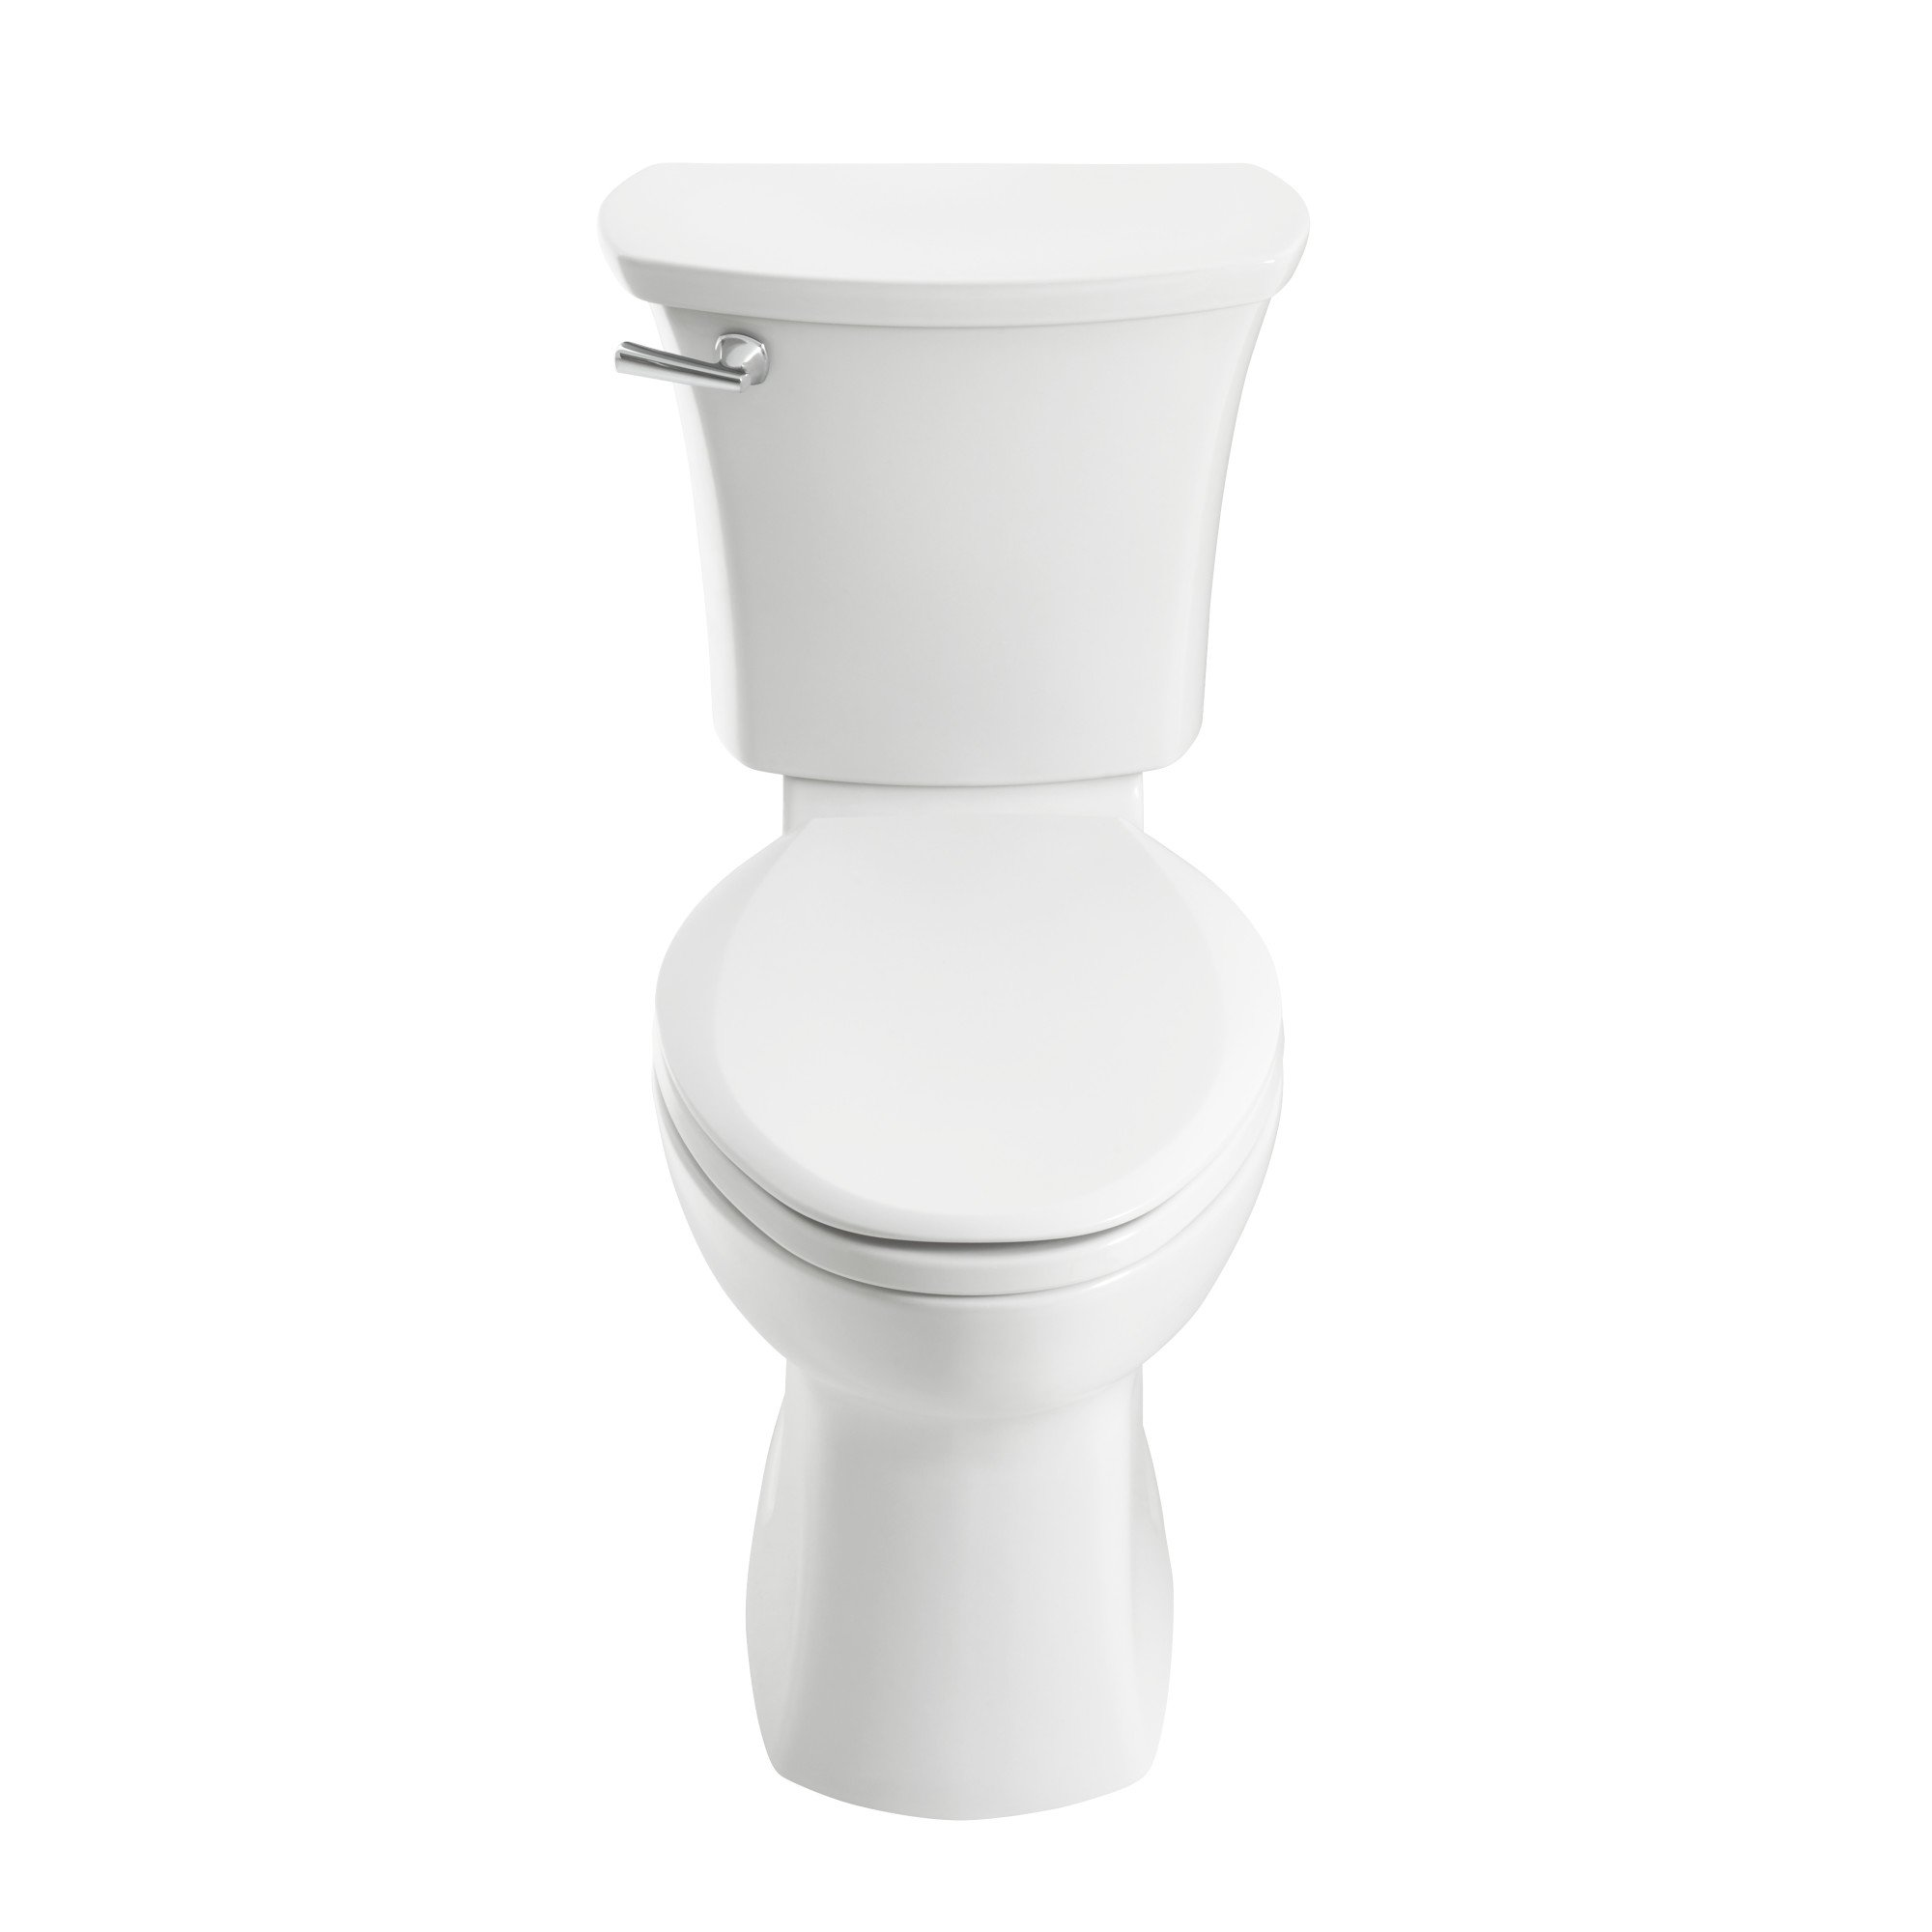 American Standard 204AA104.020 Edgemere Right Height – Elongated Toilet Less Seat, White